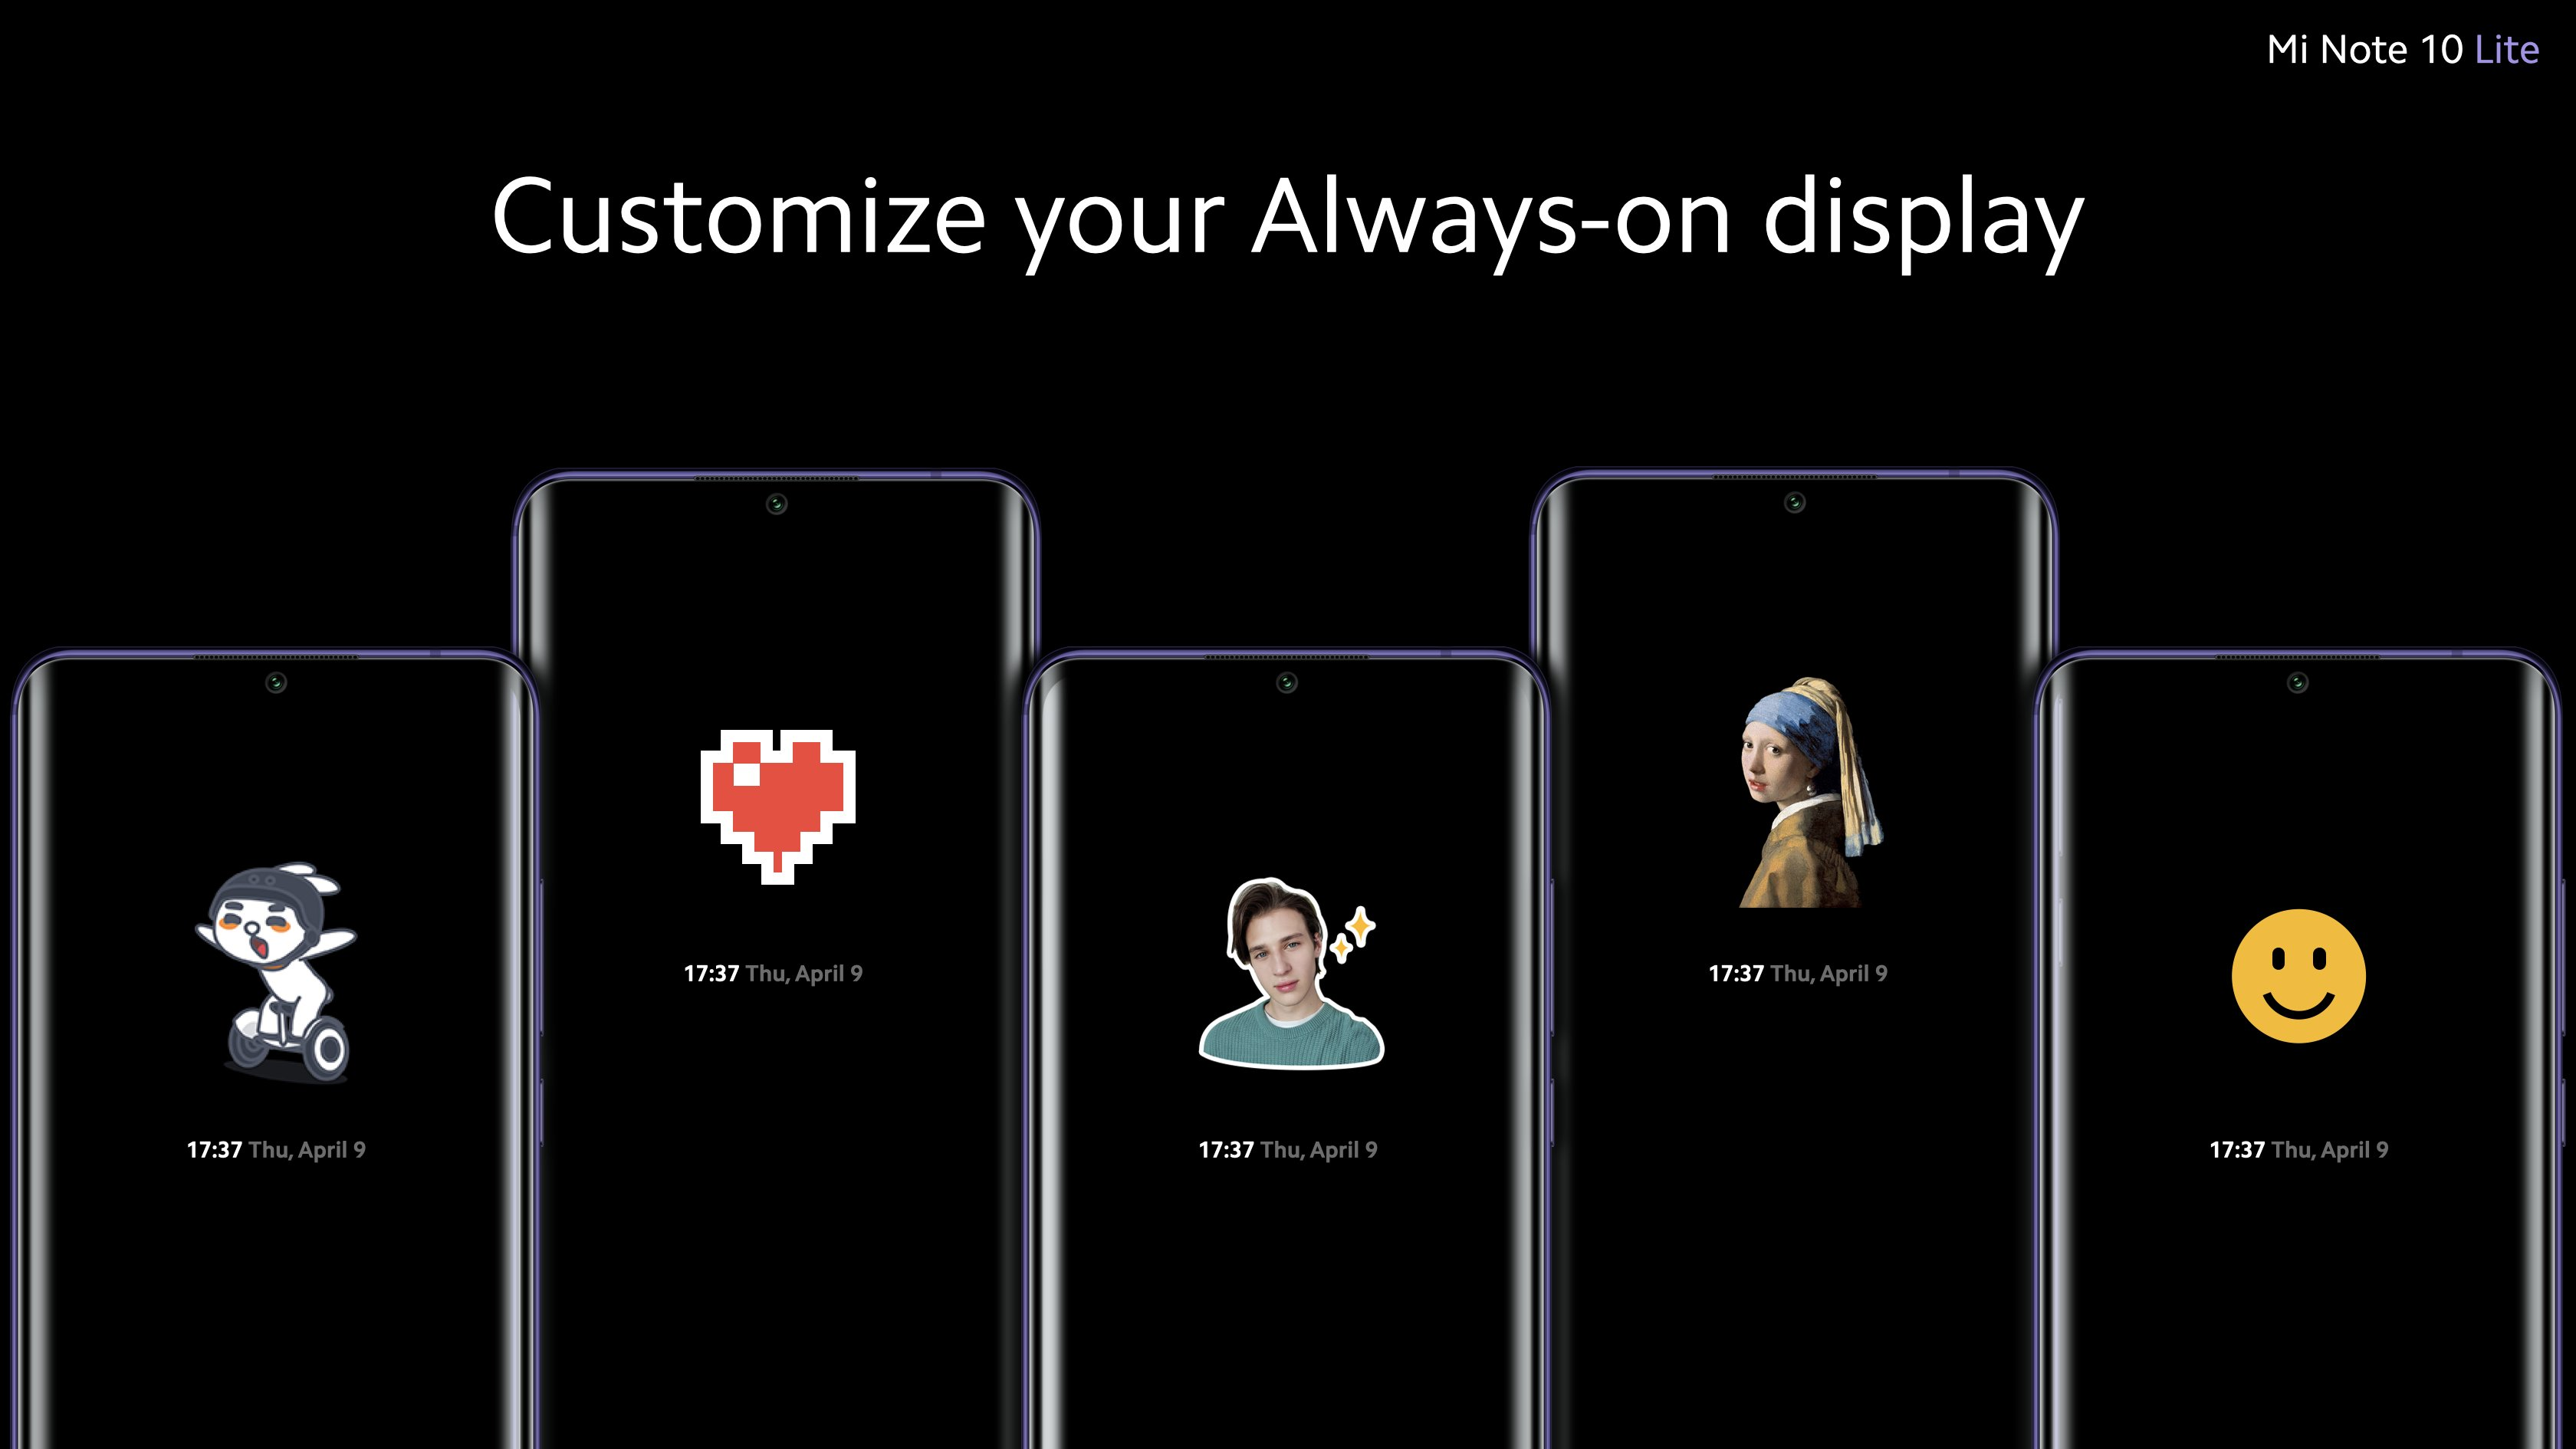 Customize your Always-on display on Mi Note 10 Lite